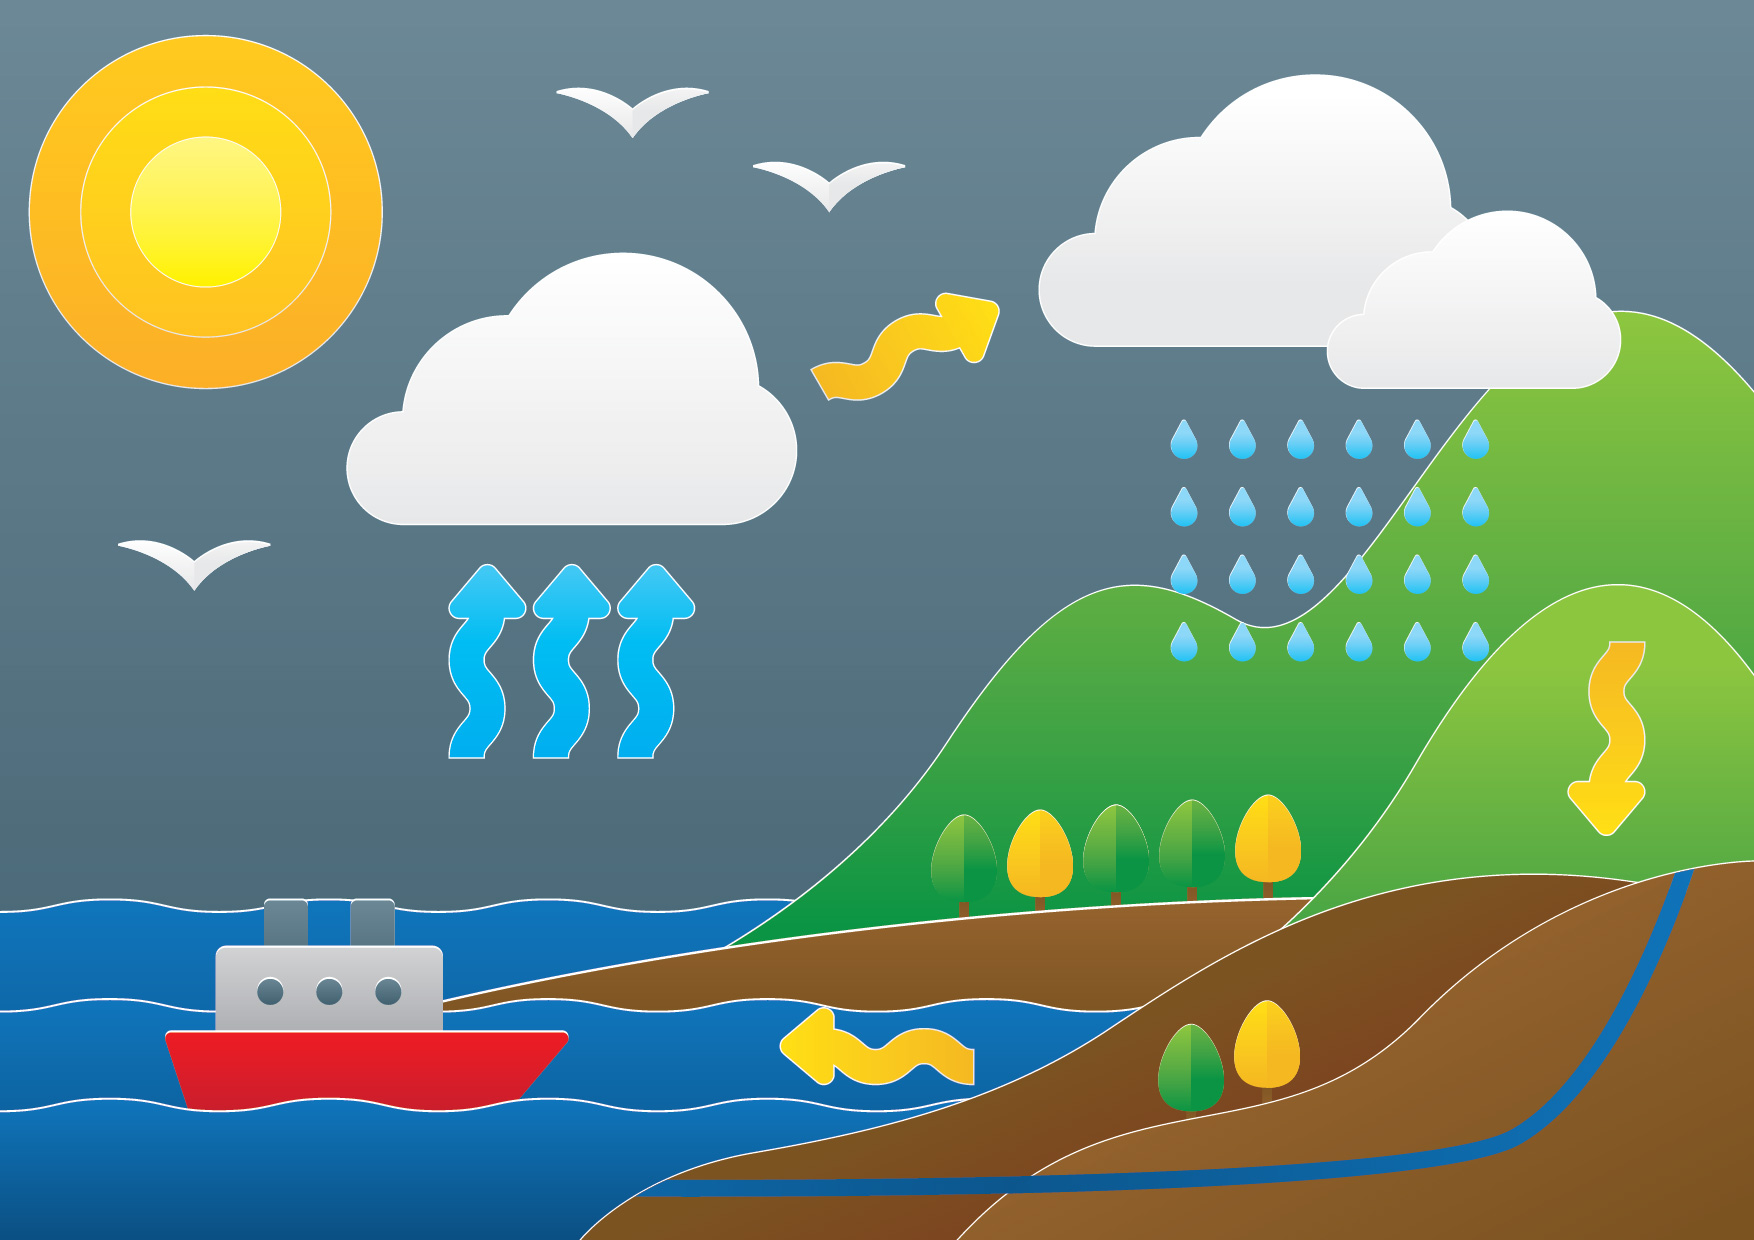 Water Cycle Paper Cut Illustration Download Free Vectors